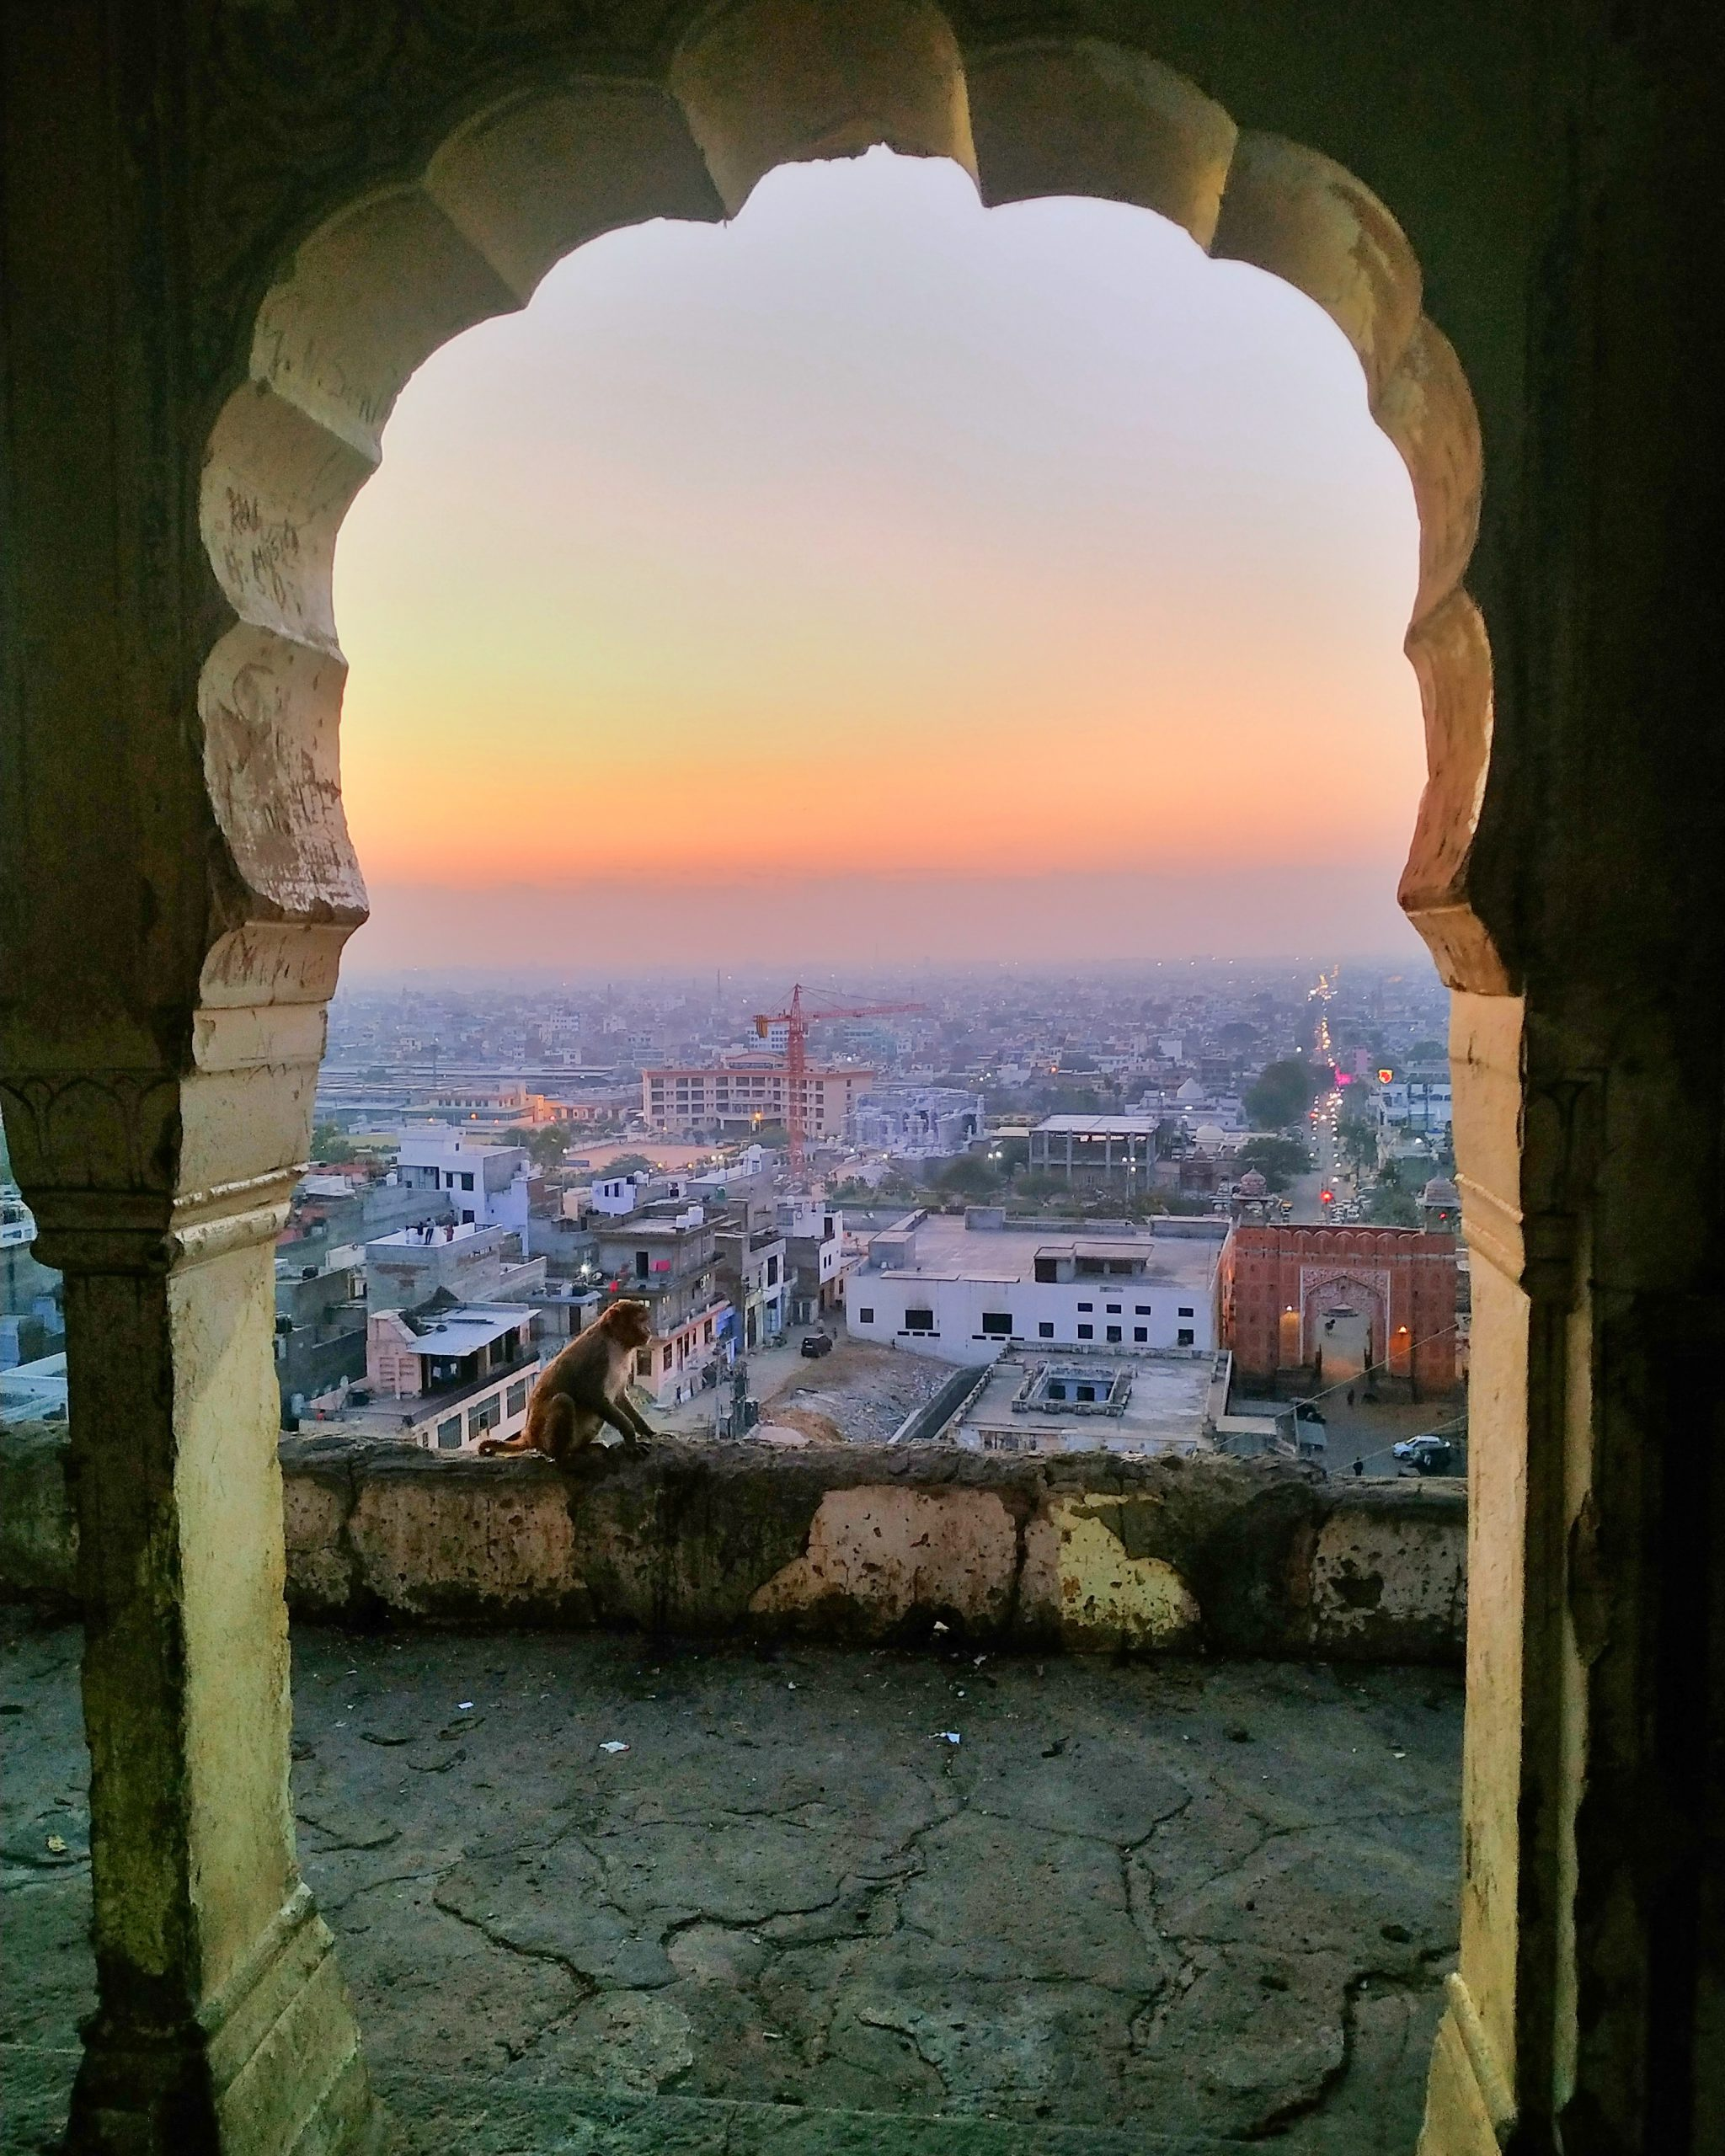 View of Jaipur city from an arch